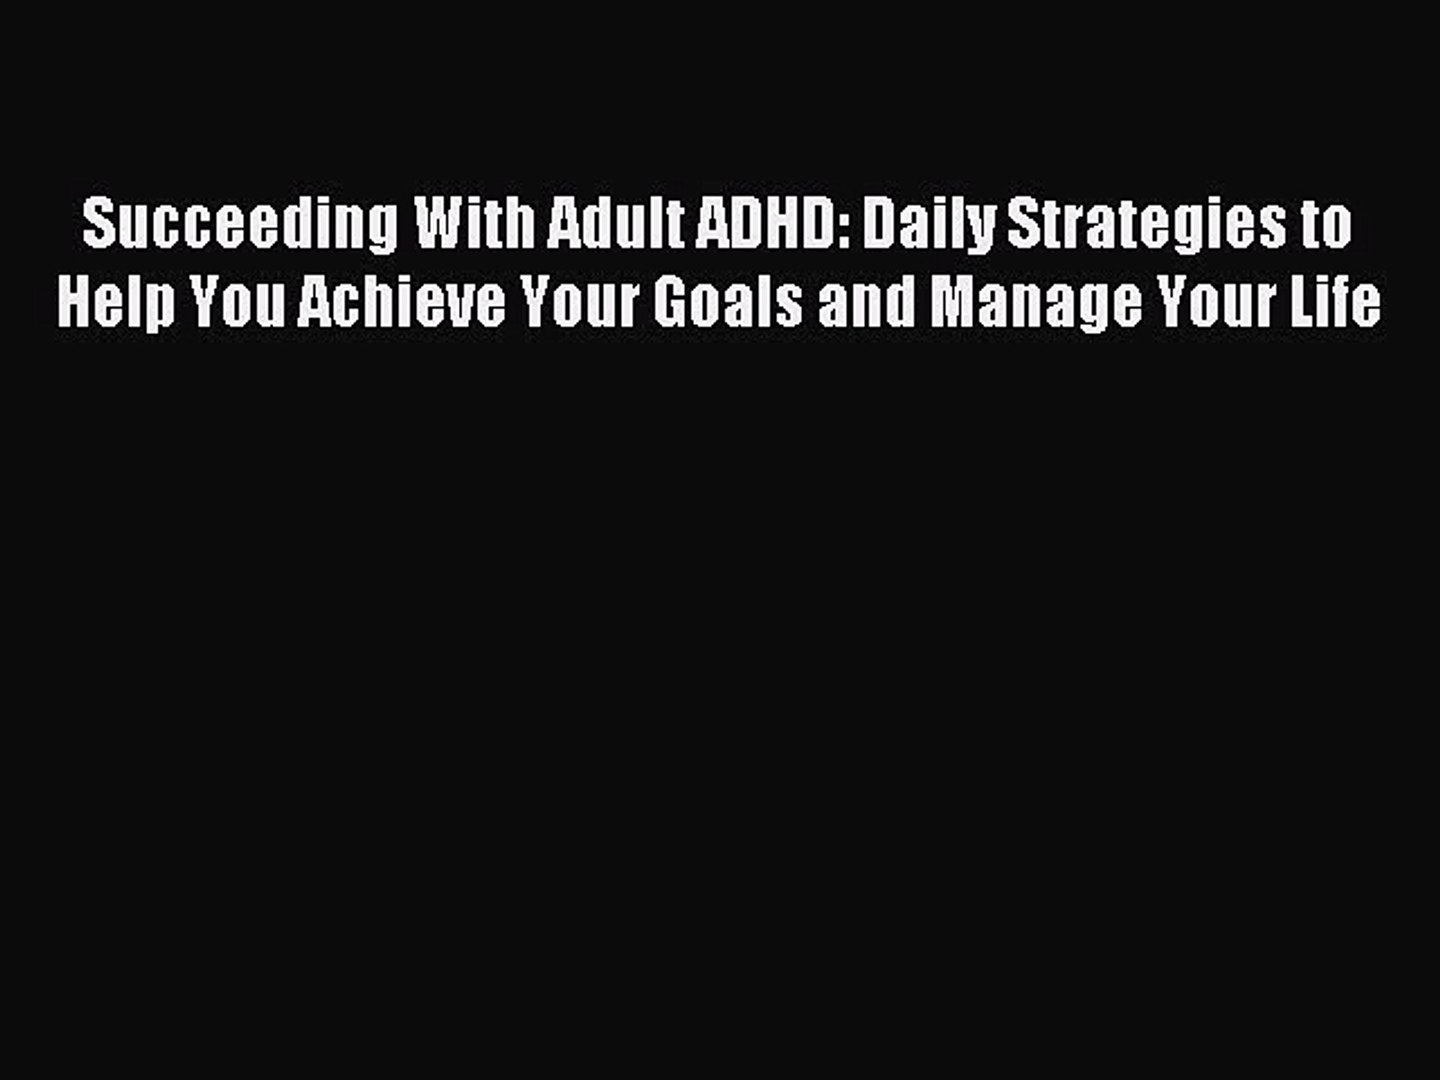 Daily Strategies to Help You Achieve Your Goals and Manage Your Life Succeeding With Adult ADHD